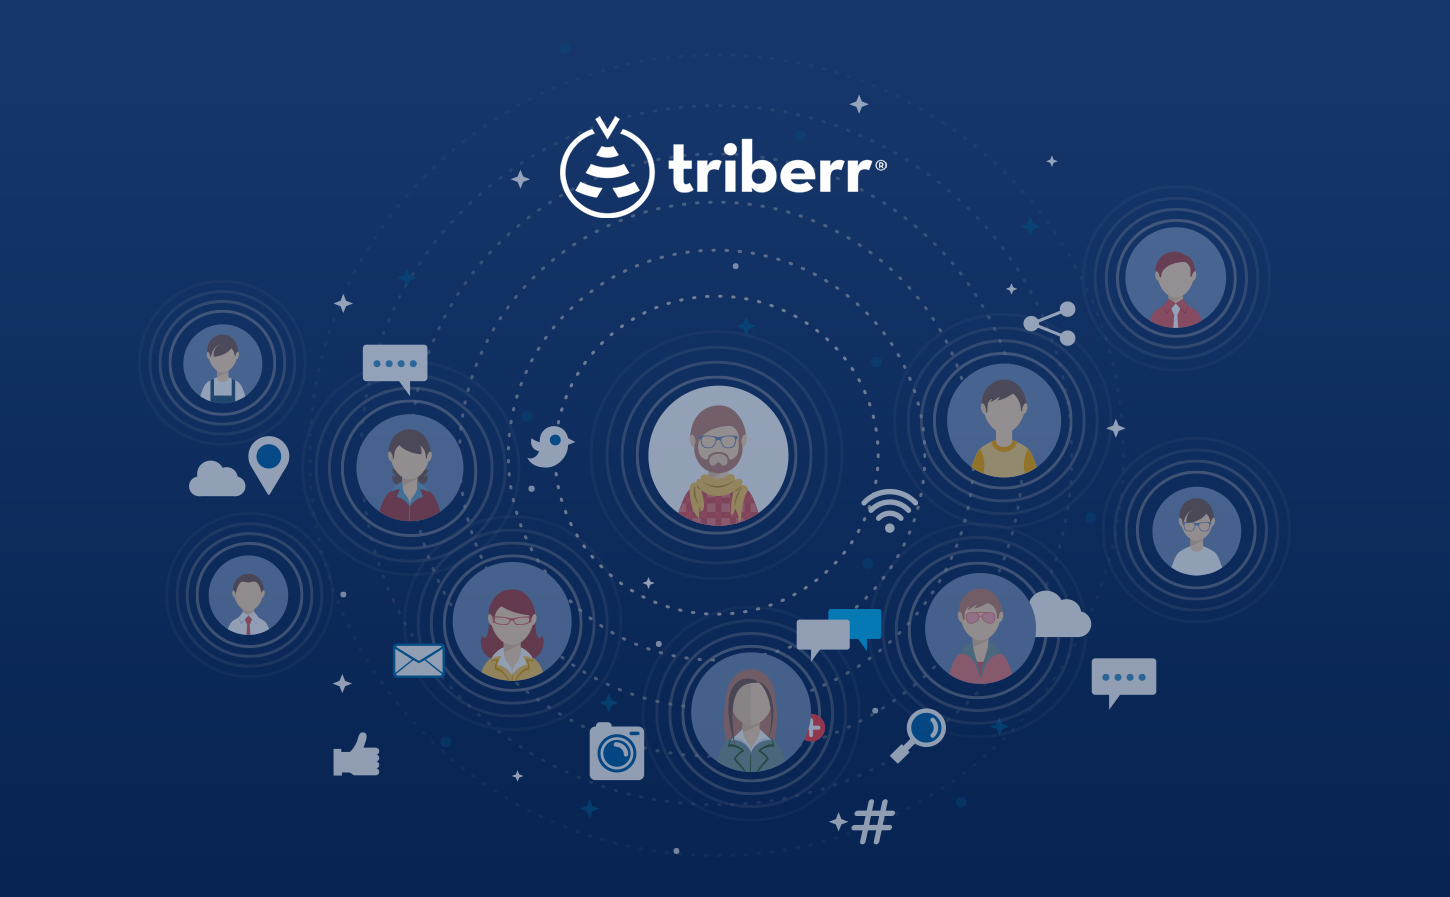 Triberr Influencer Marketing Update